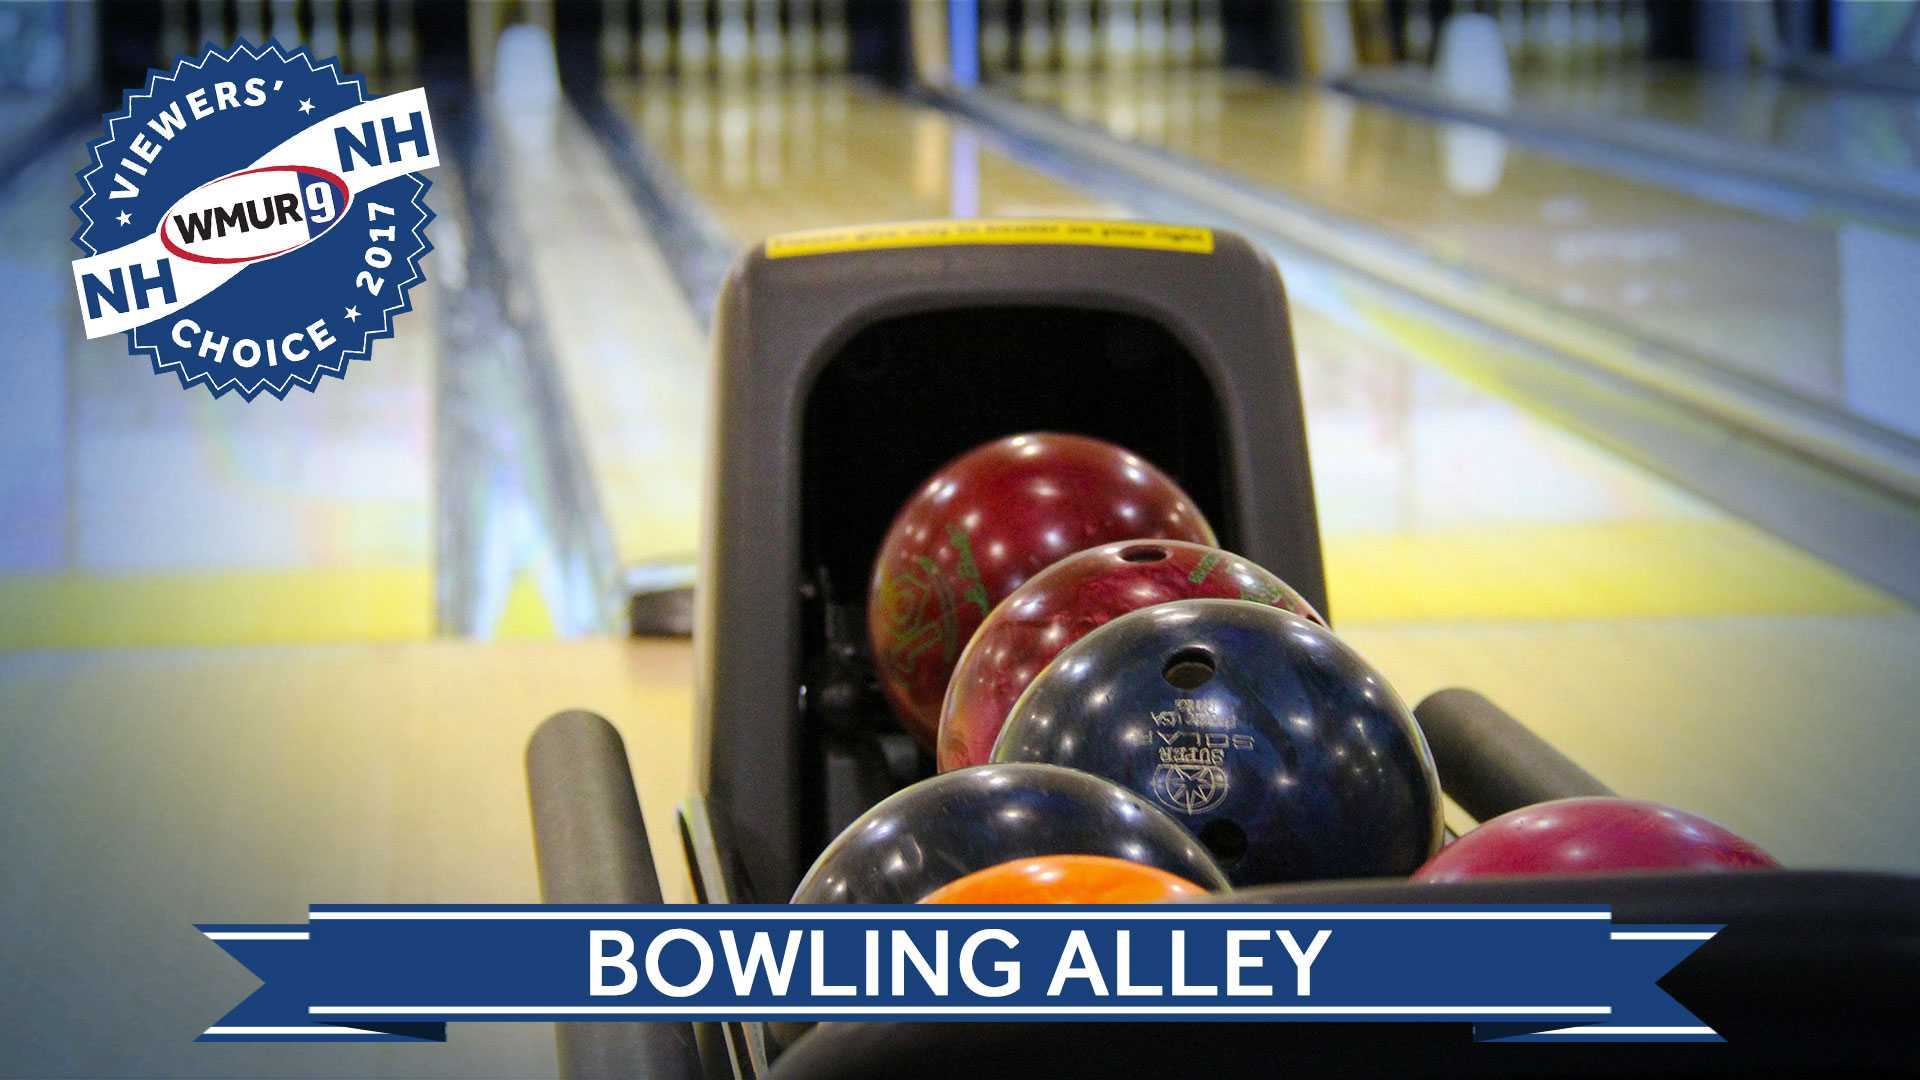 Viewers Choice bowling alley